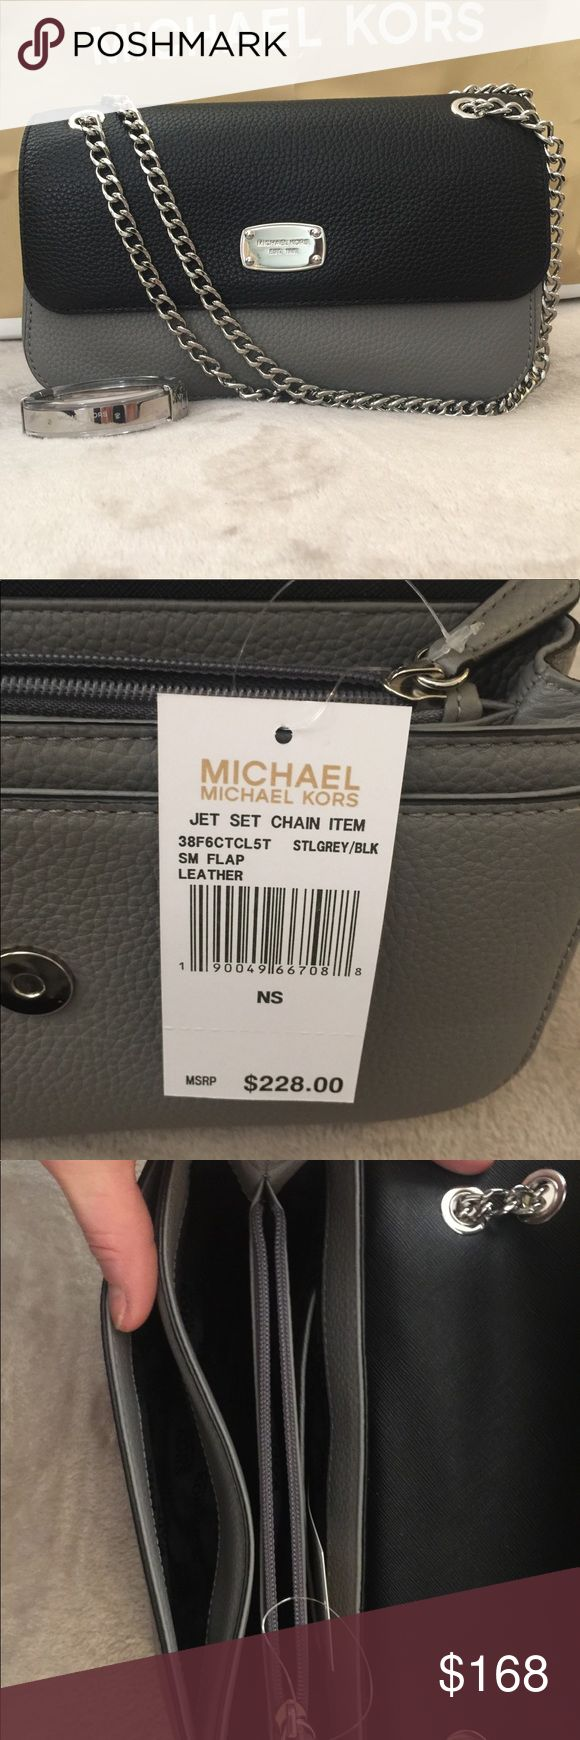 Michael Kors SM Jet Set Bag 🚨Price Reduced 🚨 This authentic Michael Kors bag is grey and black w/ silver hardware. This bag is versatile! It can compliment that little back dress with strappy heels or can be paired with jeans and boots! Either way, lookin good! Michael Kors Bags Mini Bags